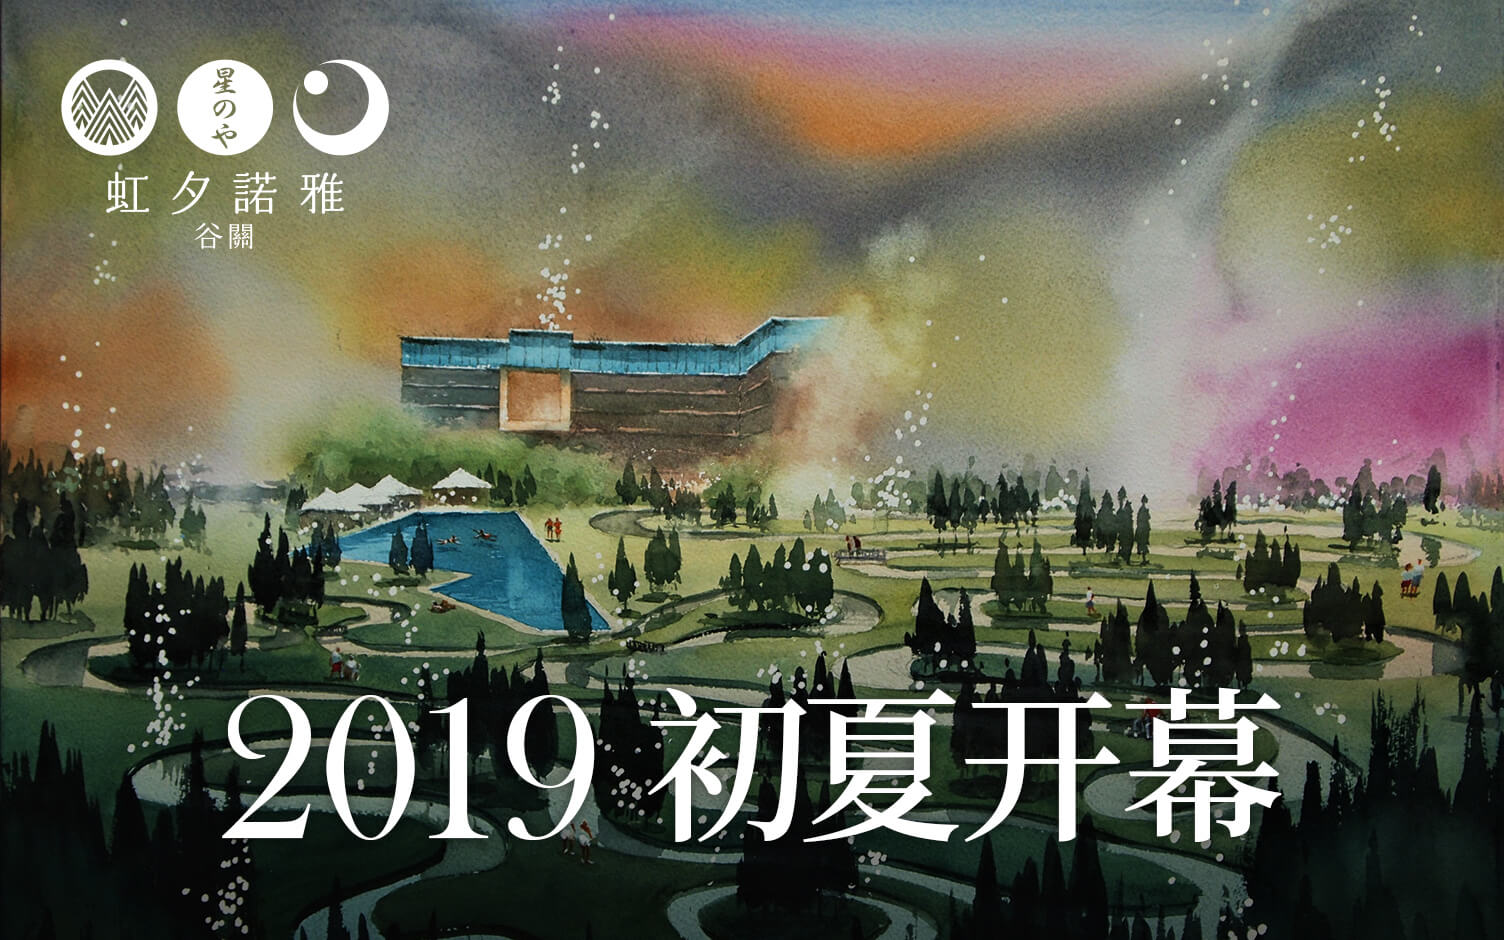 HOSHINOYA Guguan opens in early summer 2019